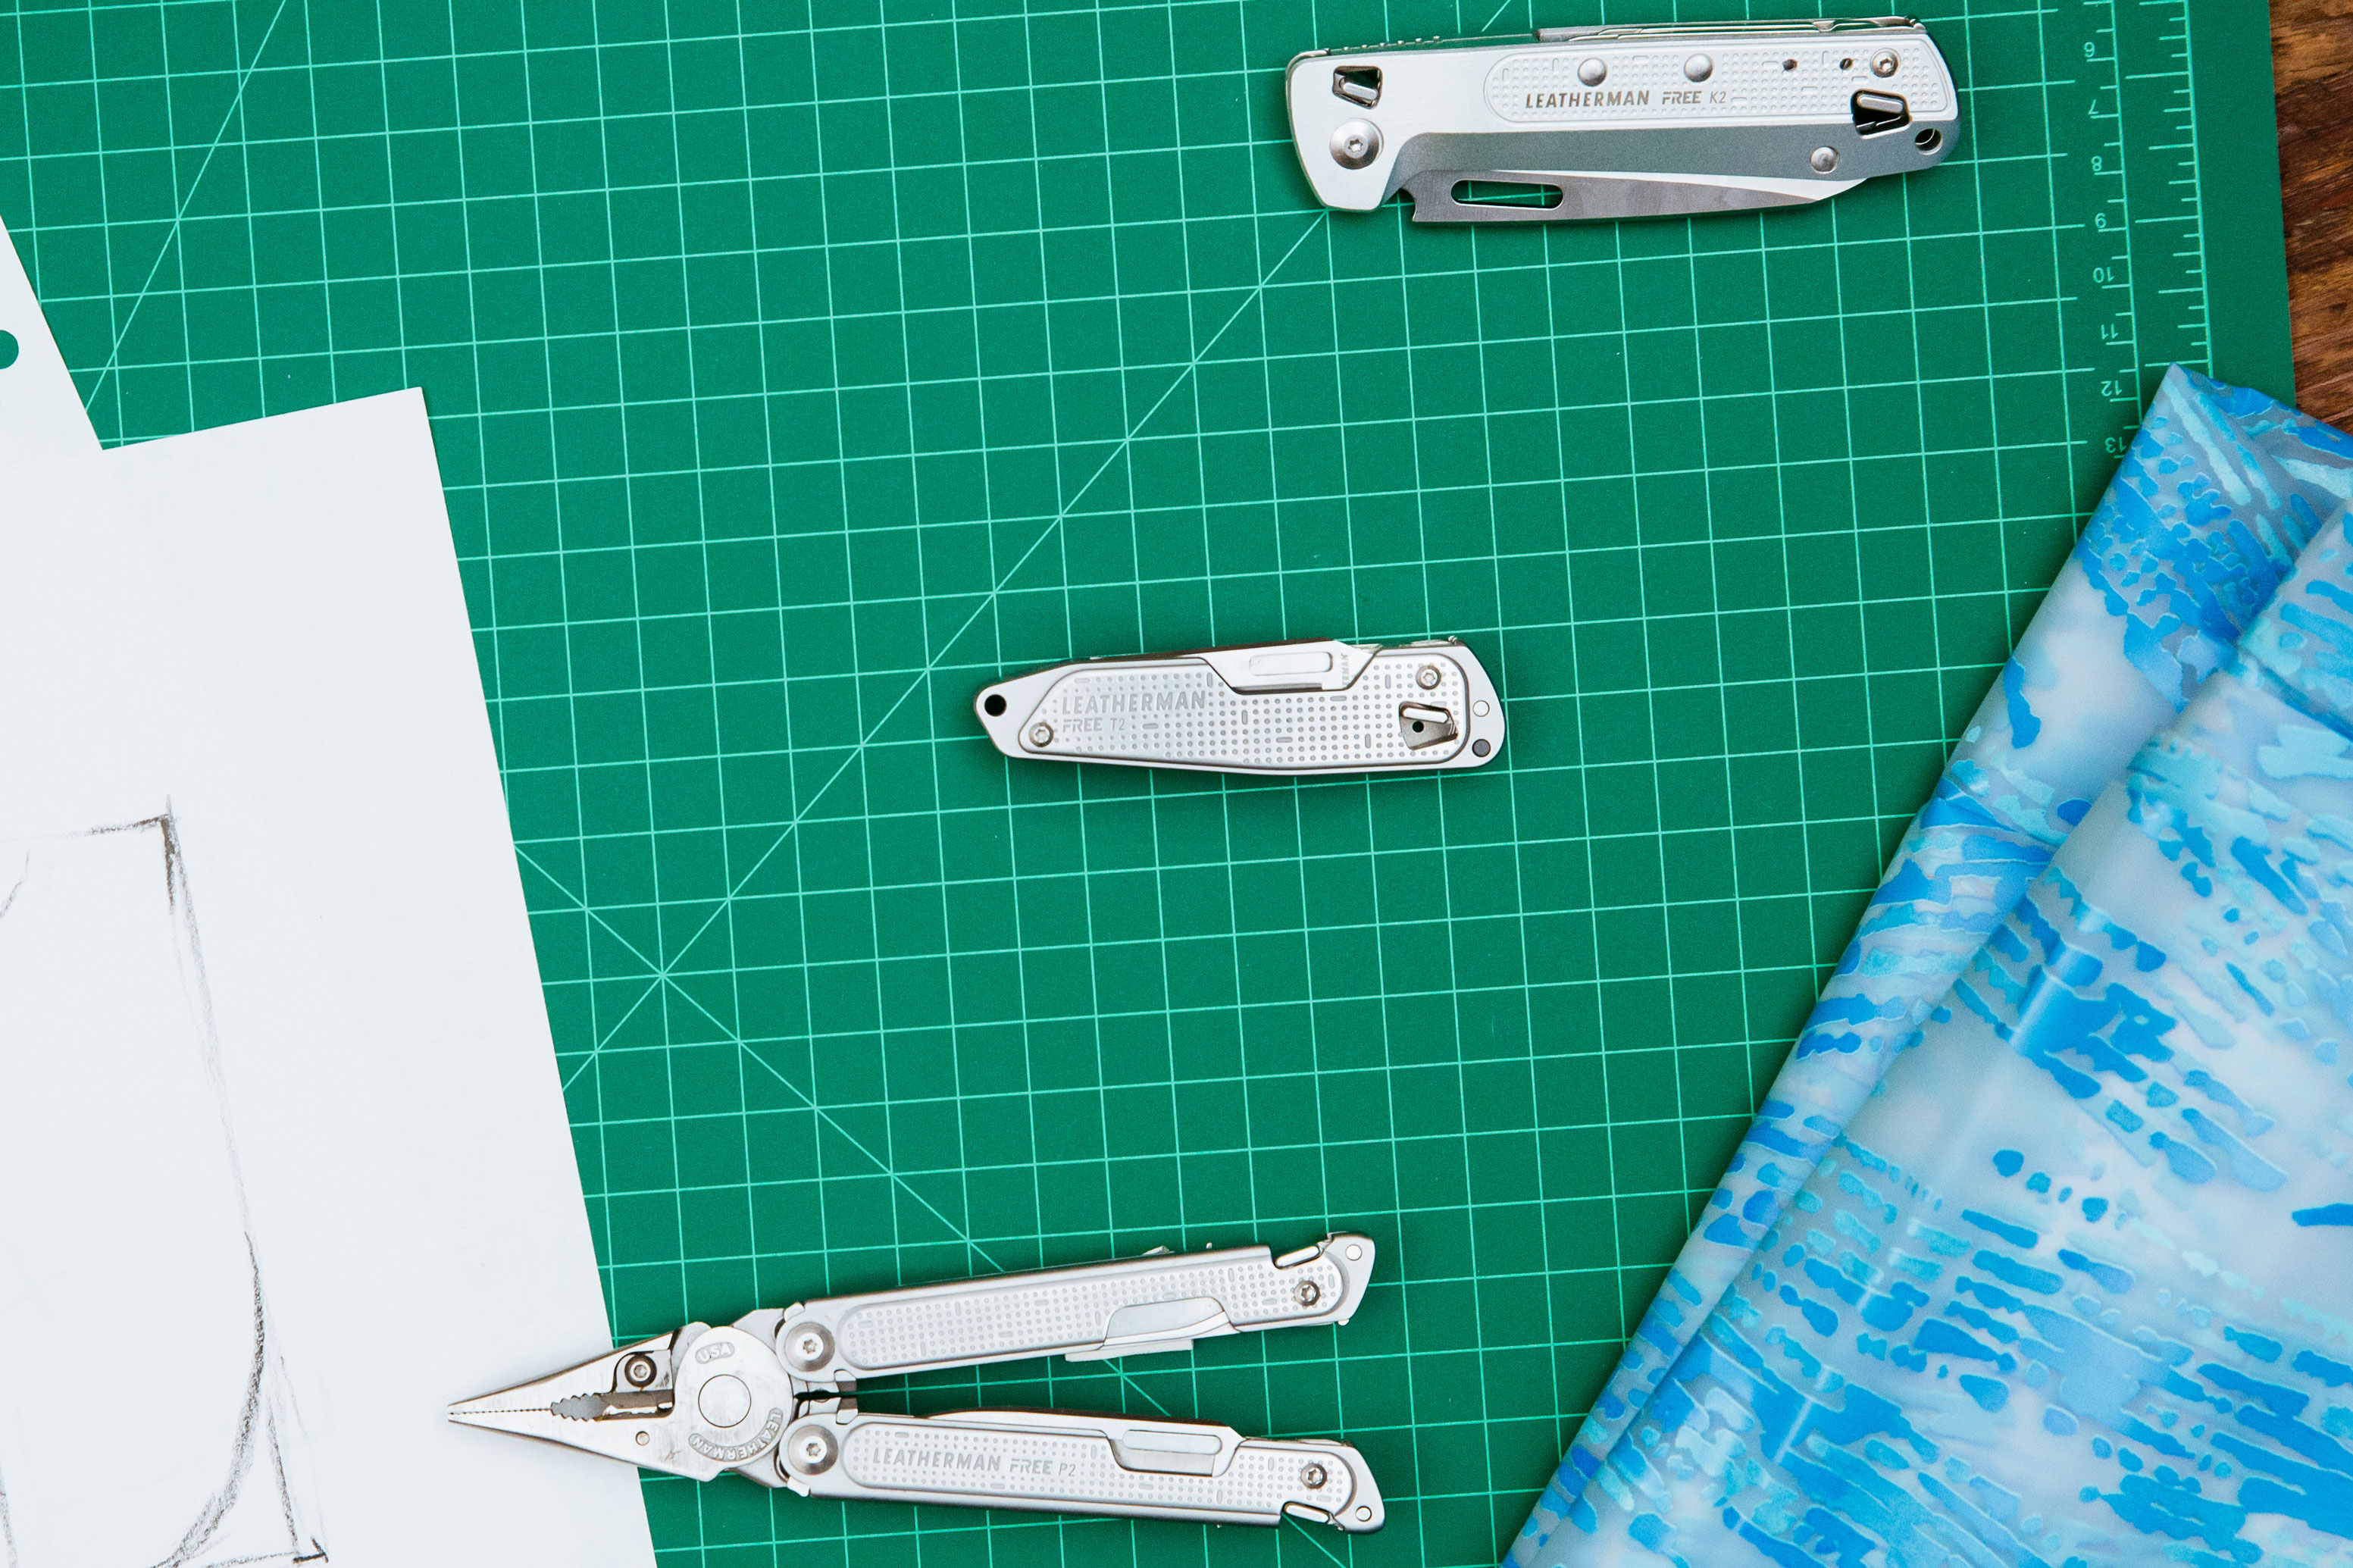 Leatherman FREE series multi-tools knives